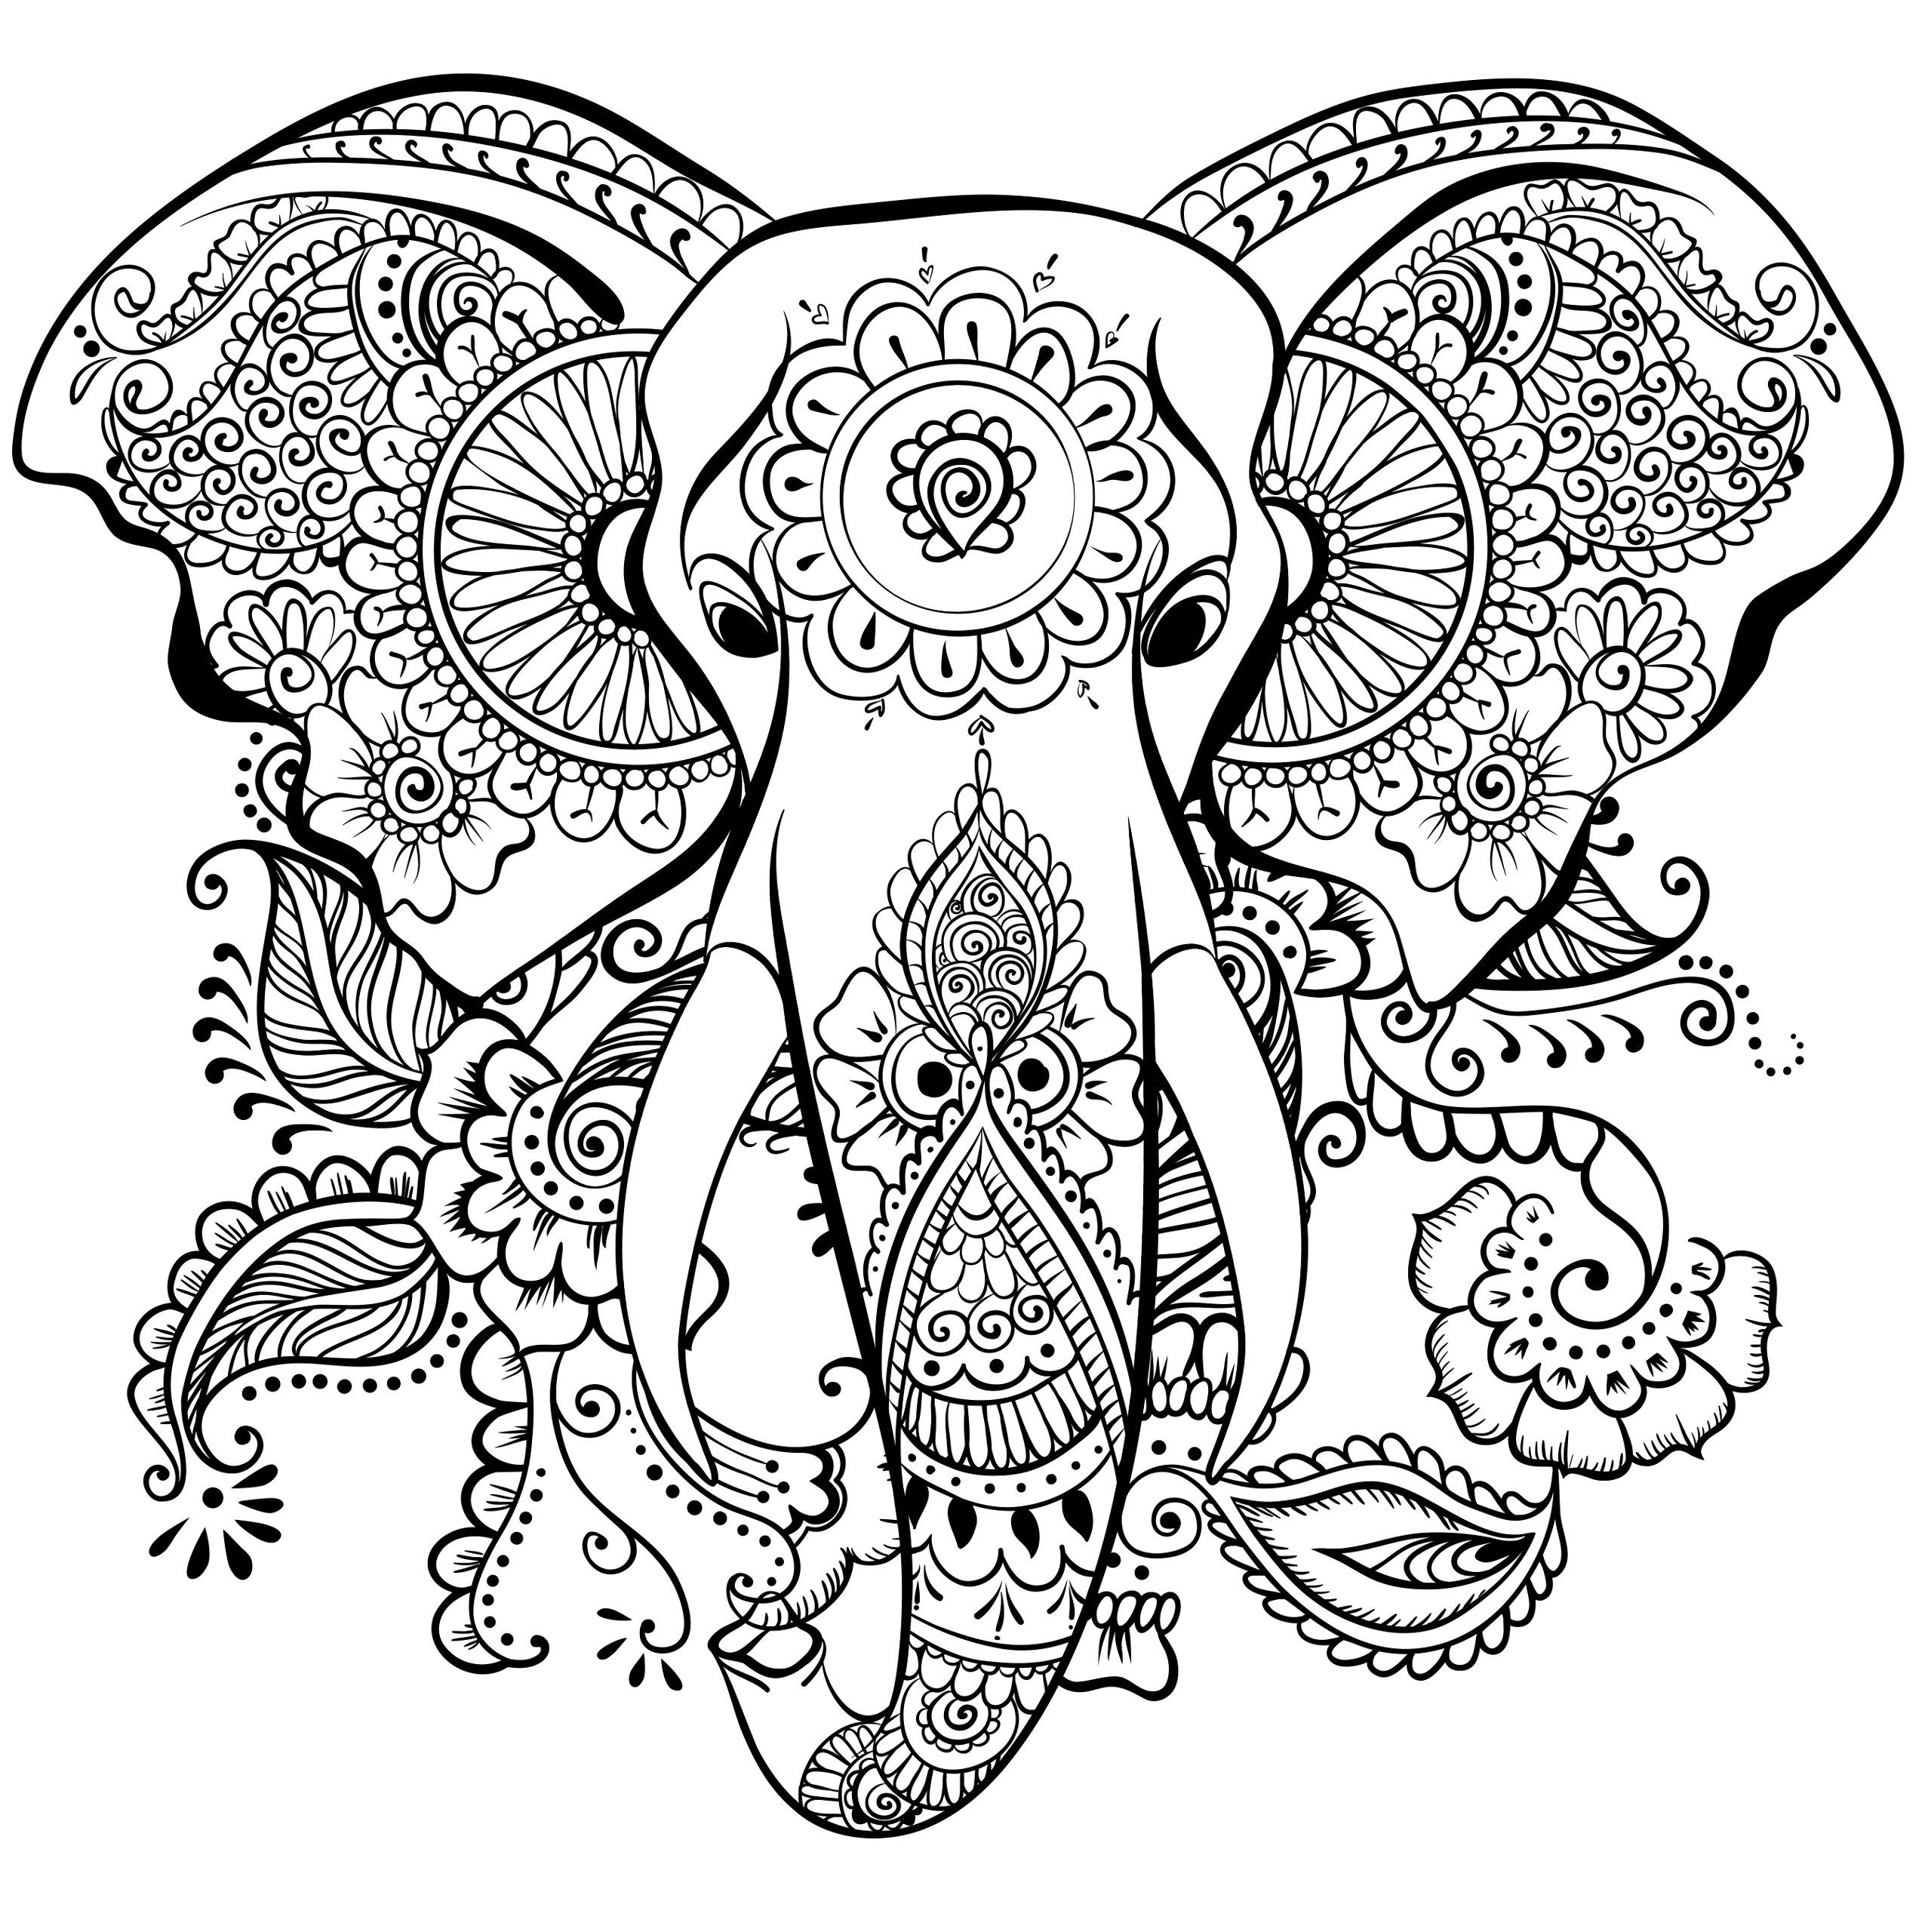 Stress relief coloring pages - Wild At Heart Adult Coloring Book 31 Stress Relieving Designs Artists